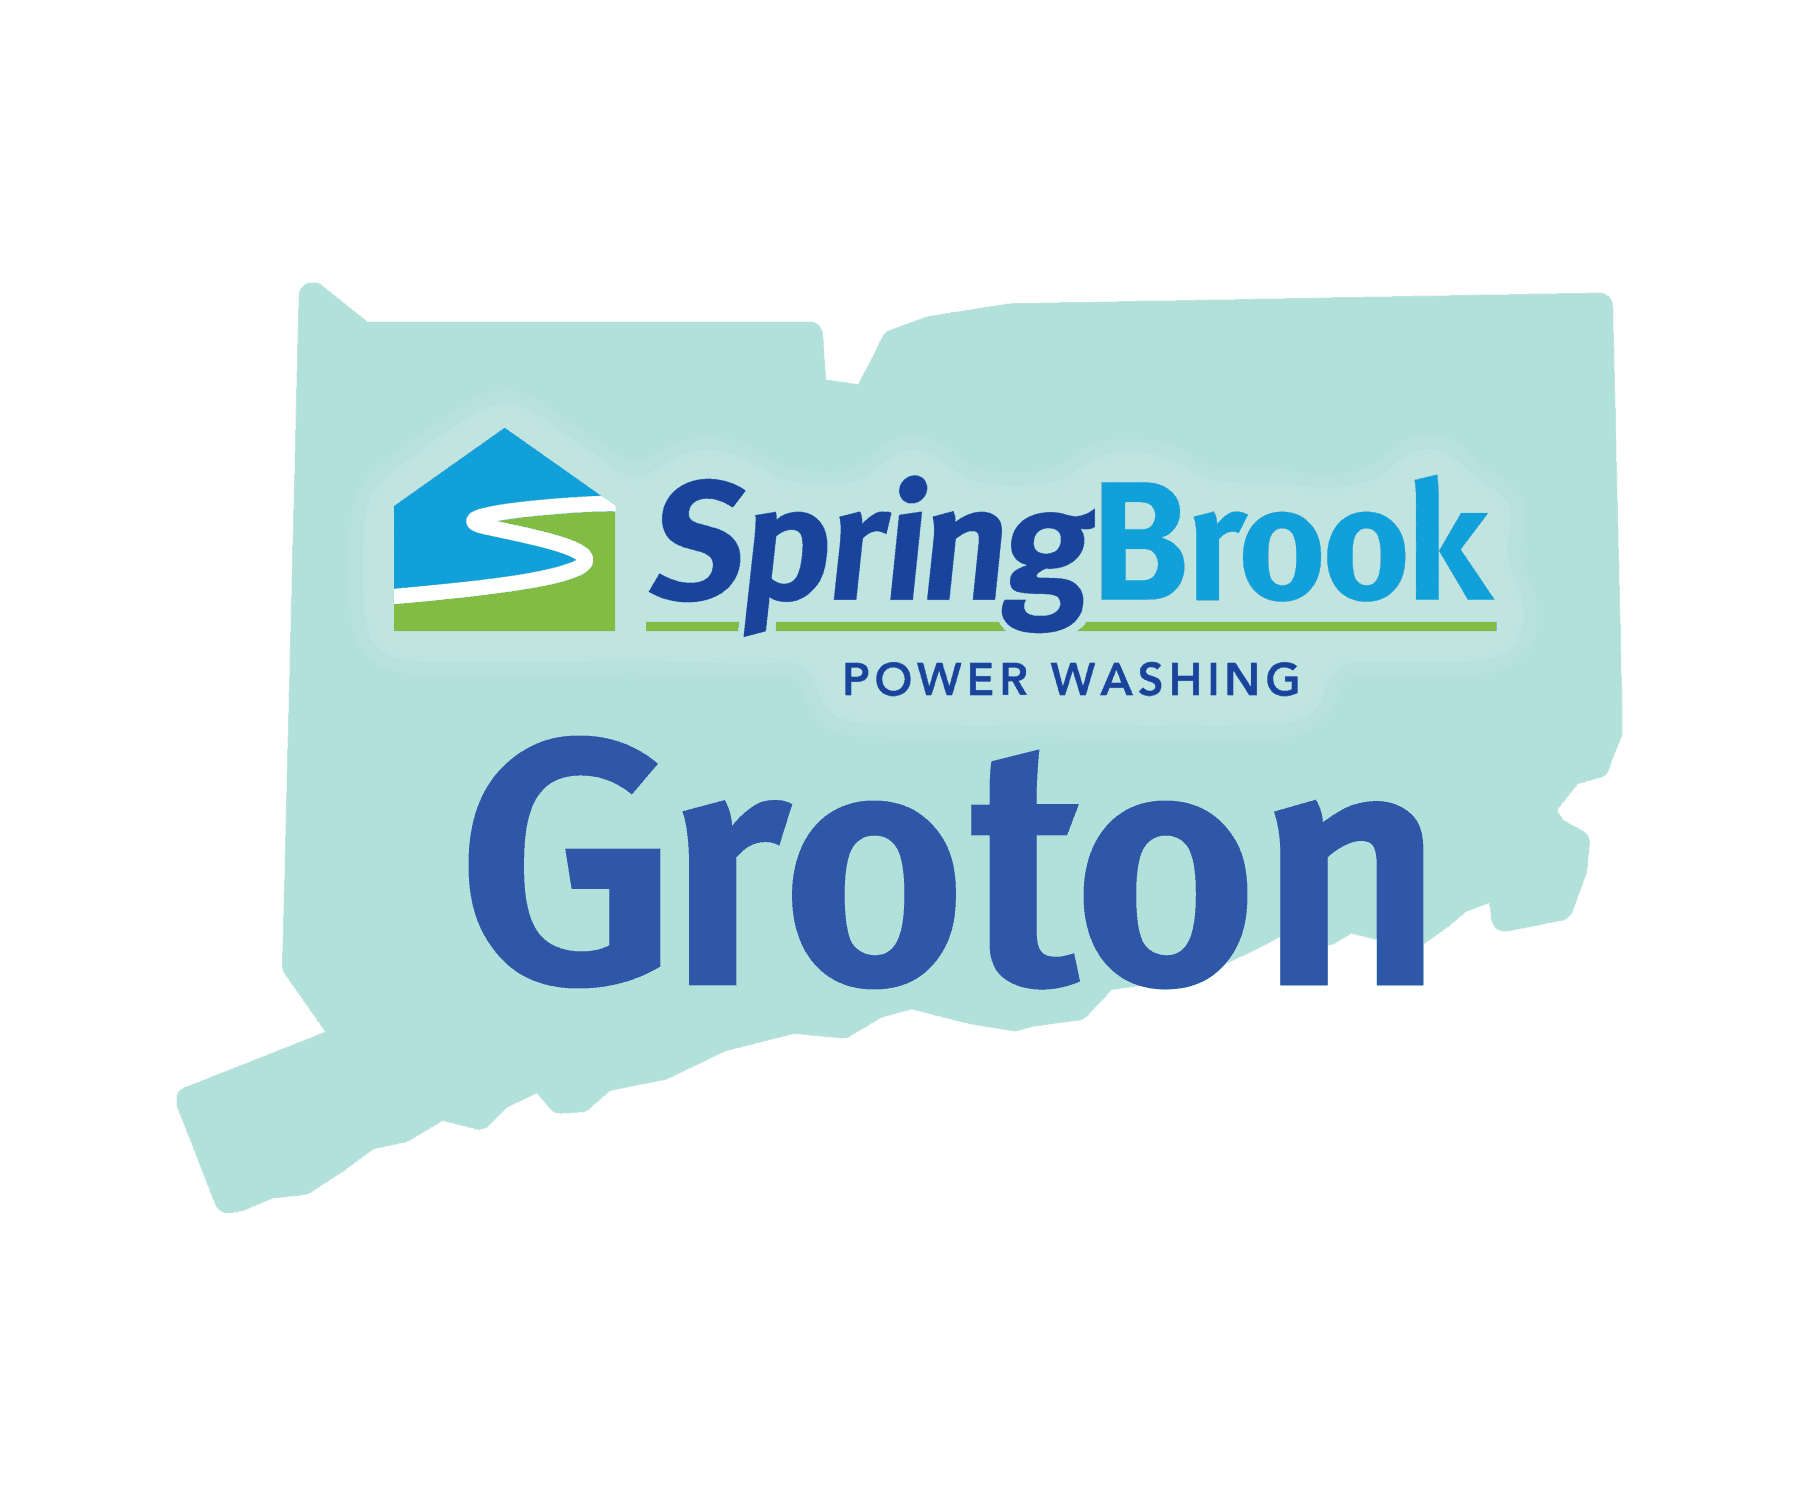 Springbrook Power Washing Groton Connecticut